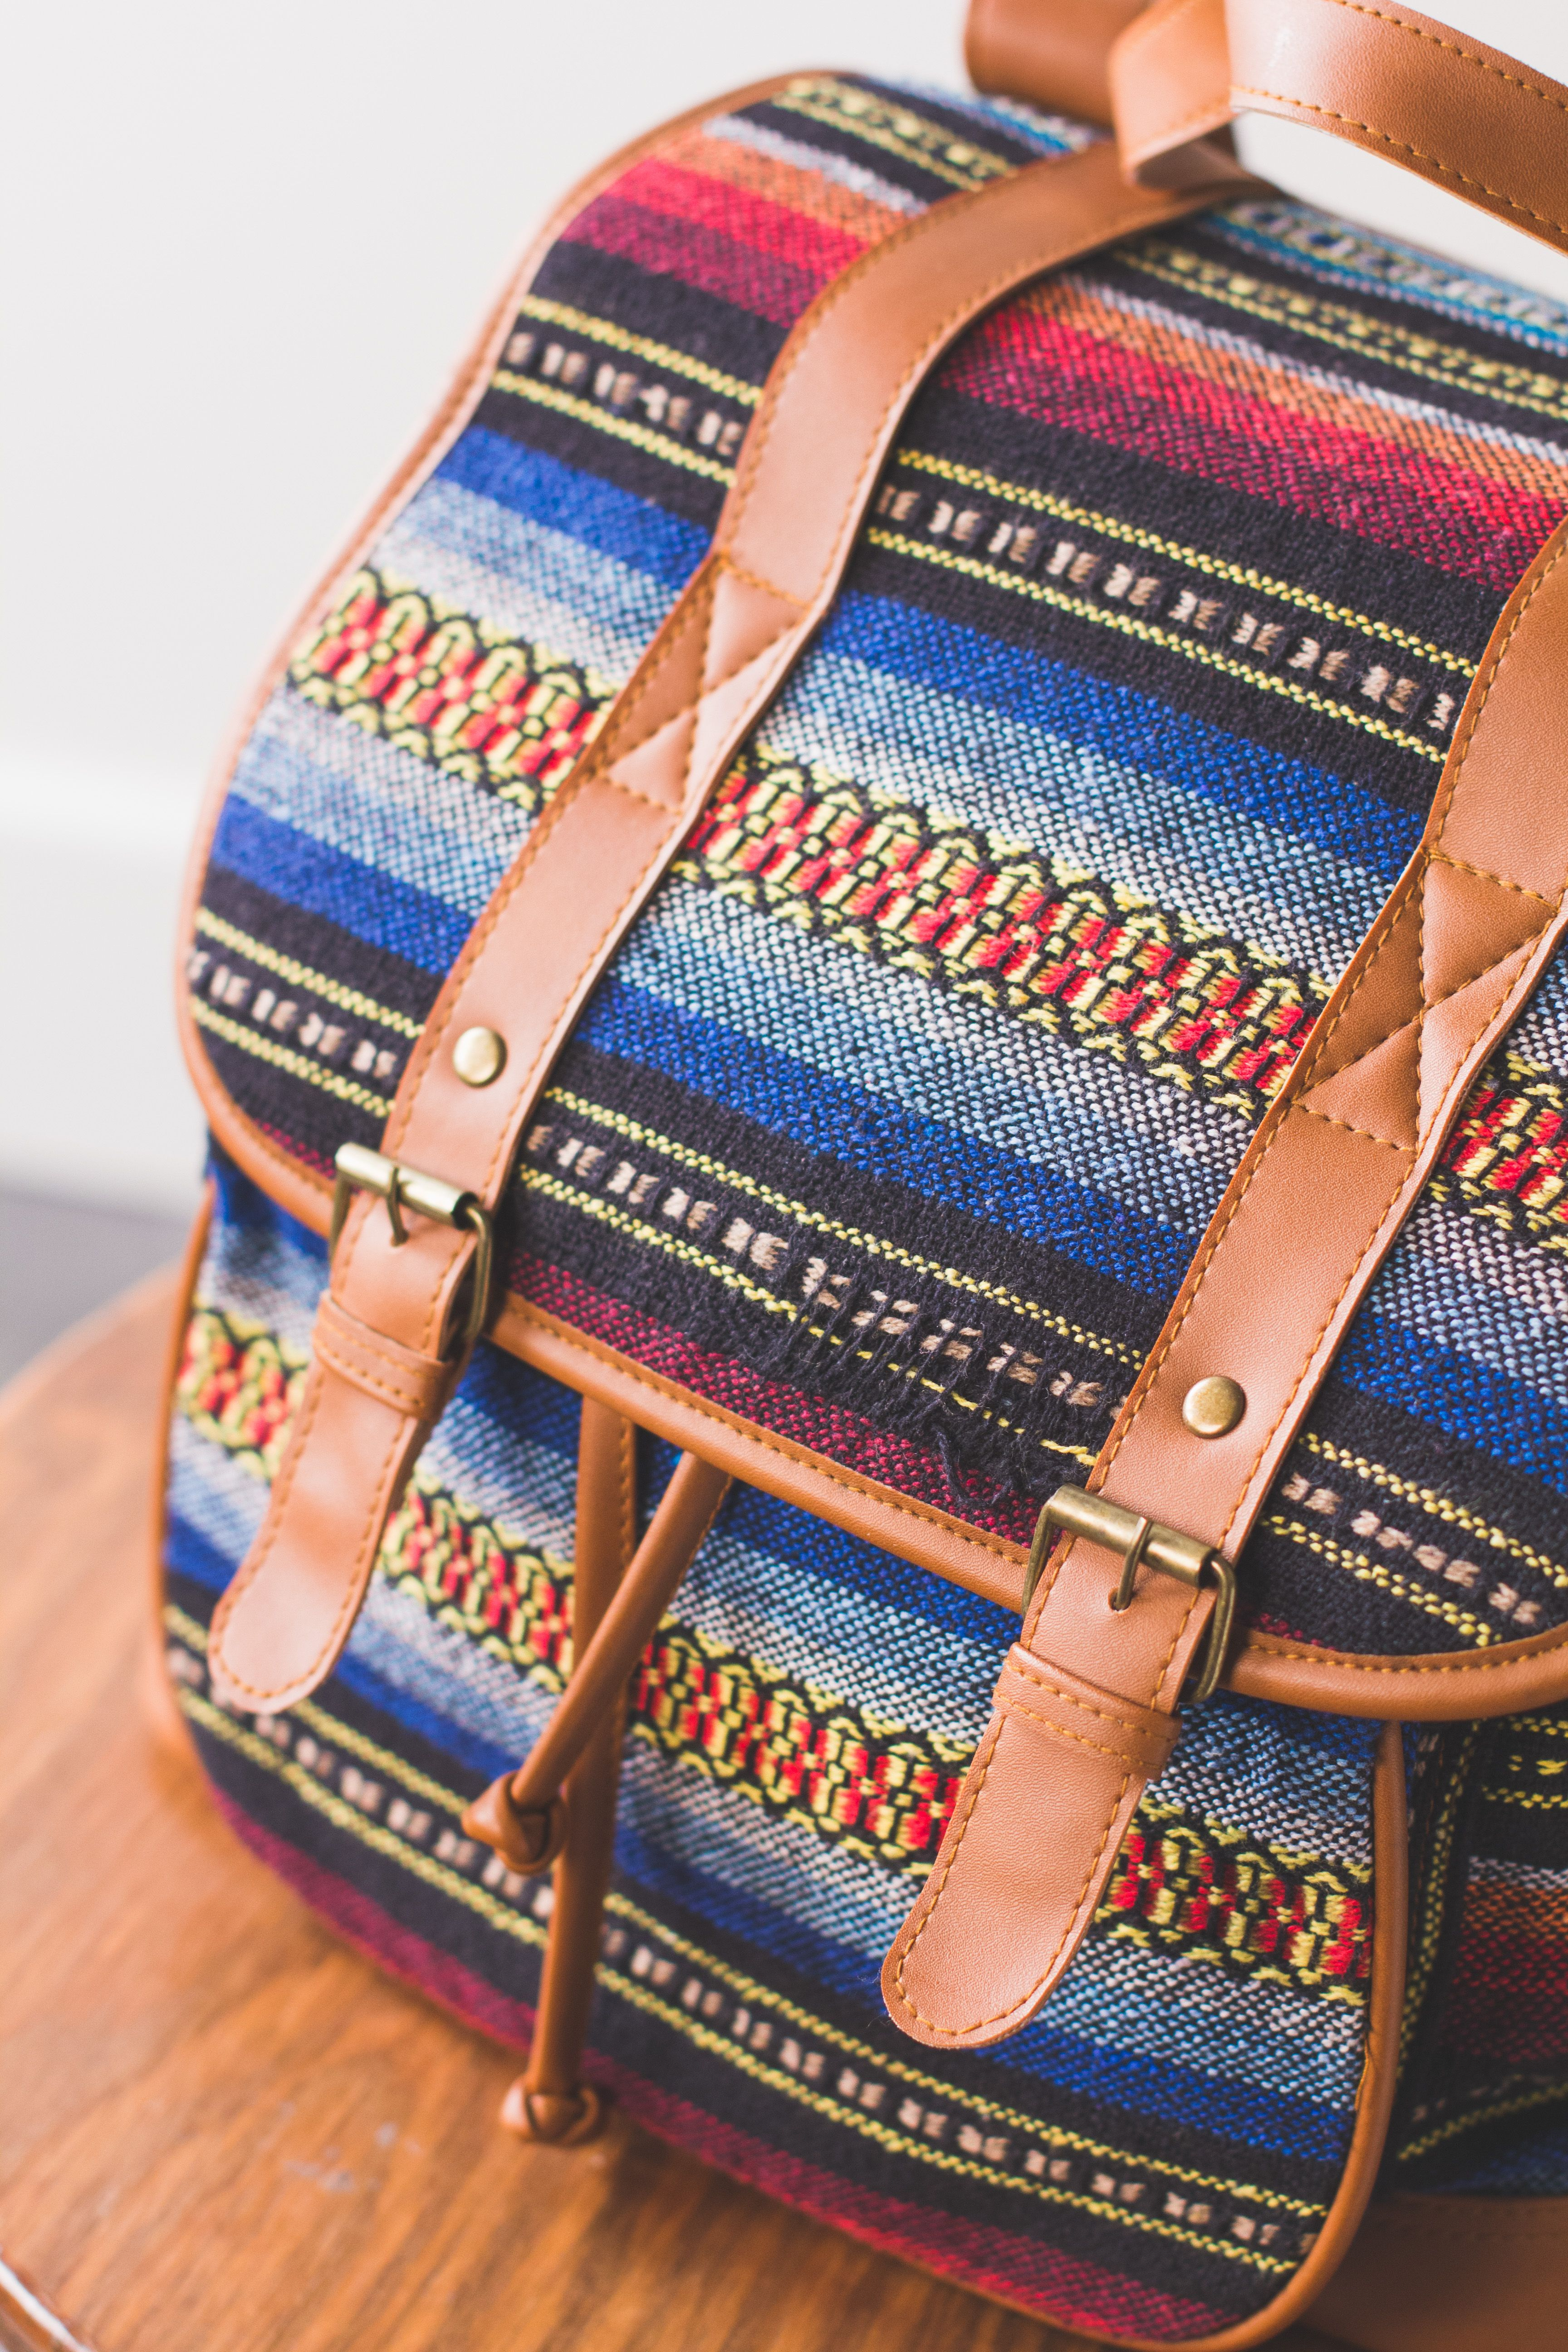 Ebt Get In Gear Hippie Bohemian Style Earthbound Trading Company Company Bag